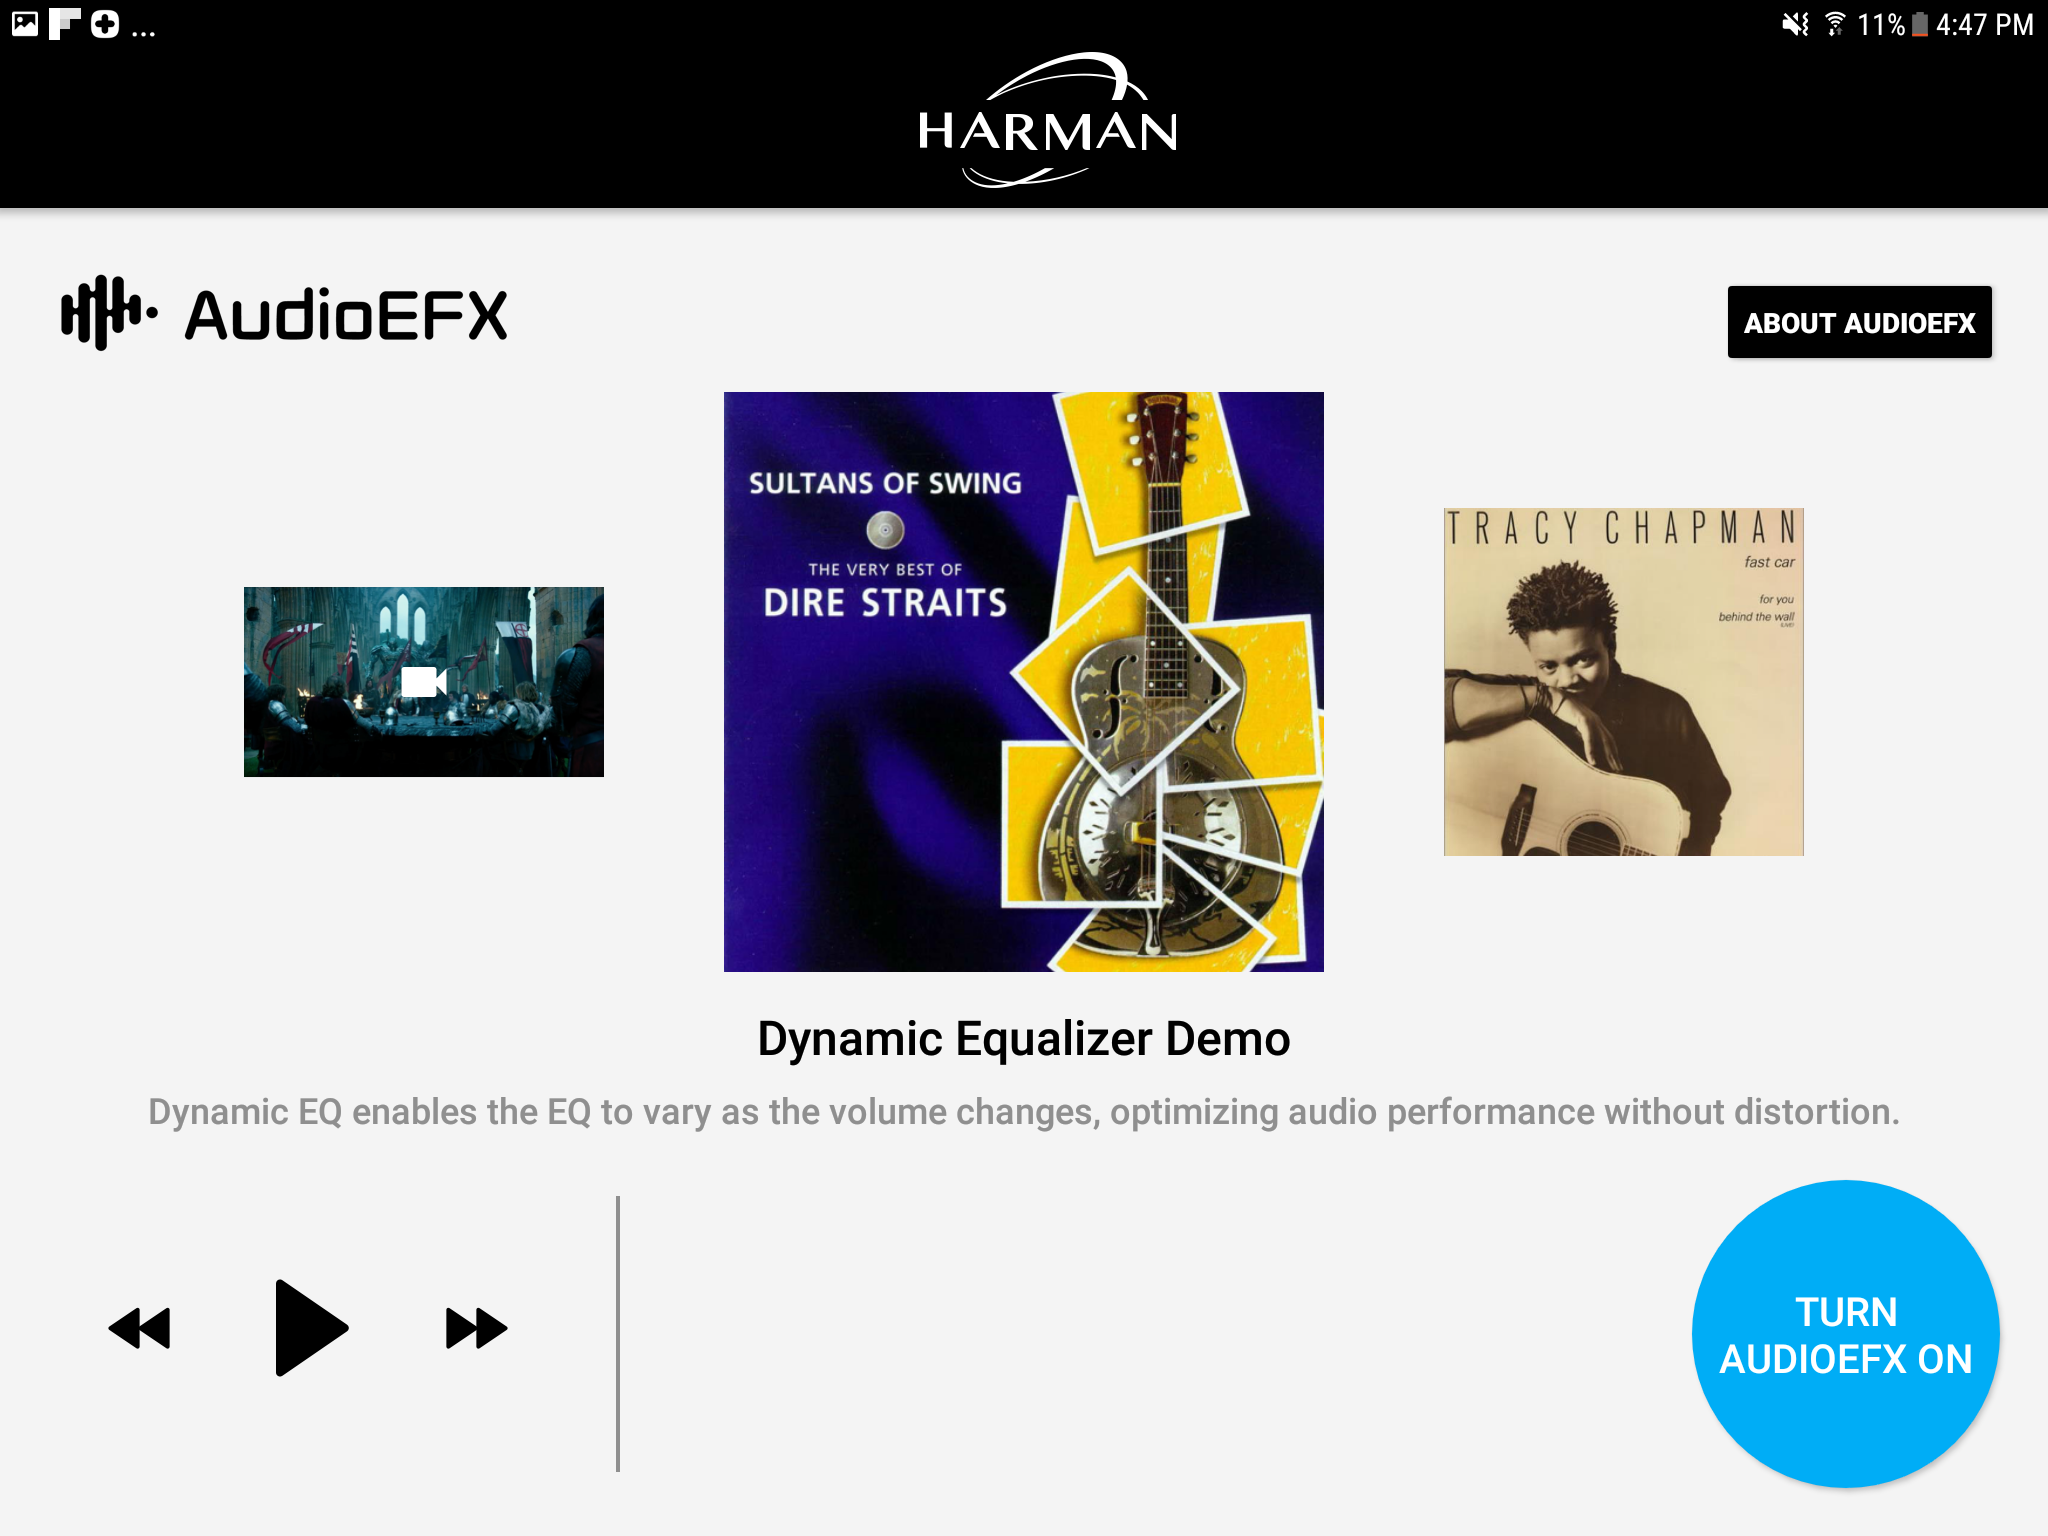 Harman app screenshot